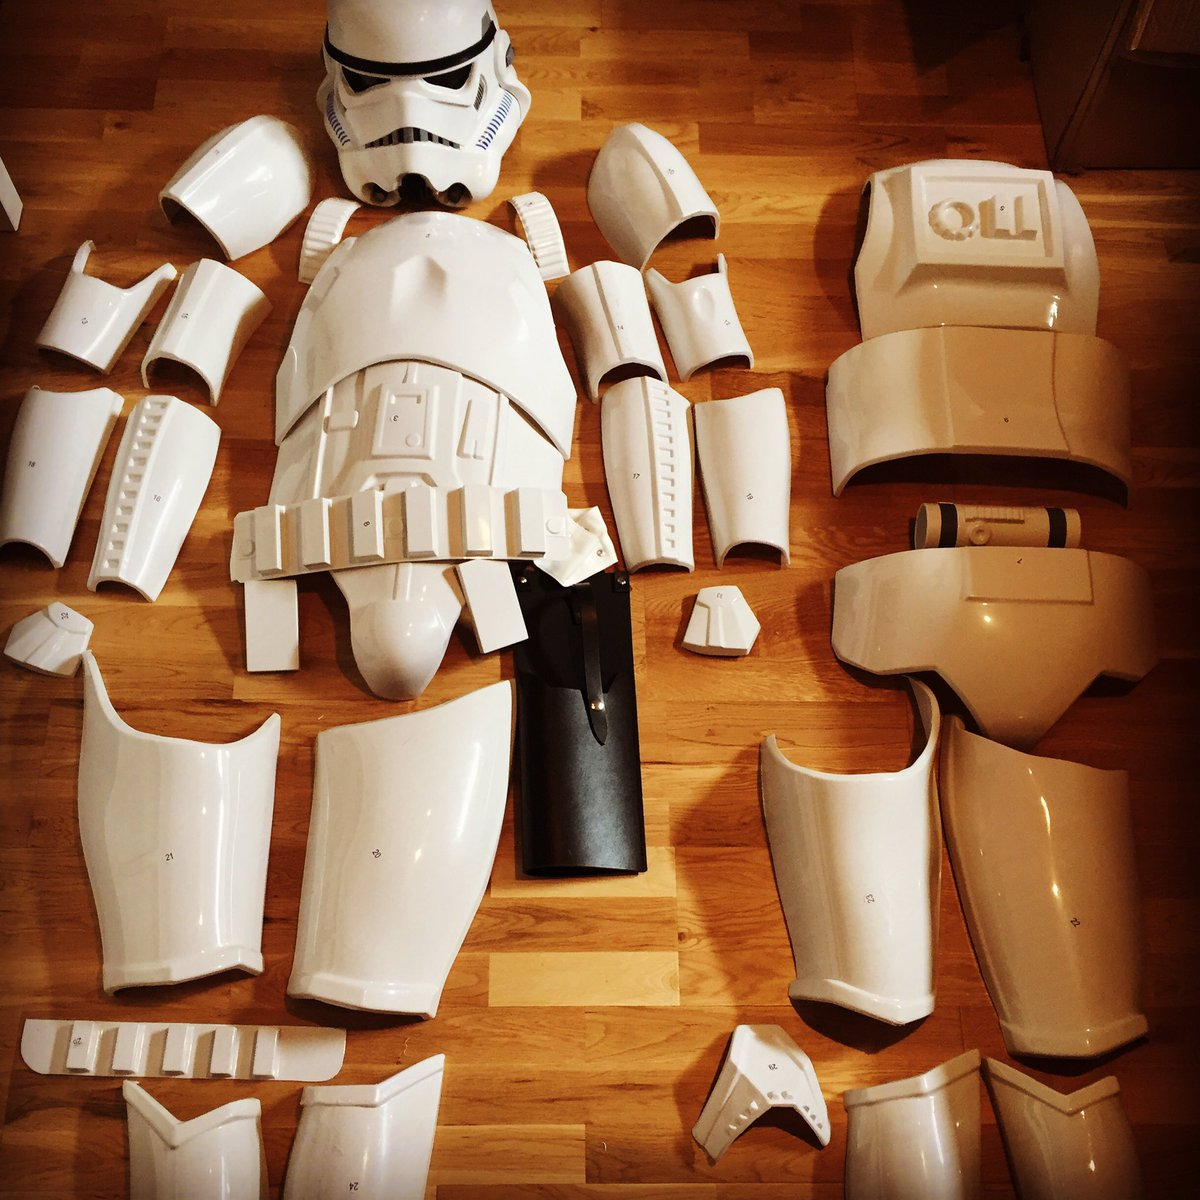 The cutting is done. Sanding, fitting and weeks of bad sleep ahead. The goal is worth it! #Anovos #Stormtroopers #501st<br>http://pic.twitter.com/rUTwS0fJqF